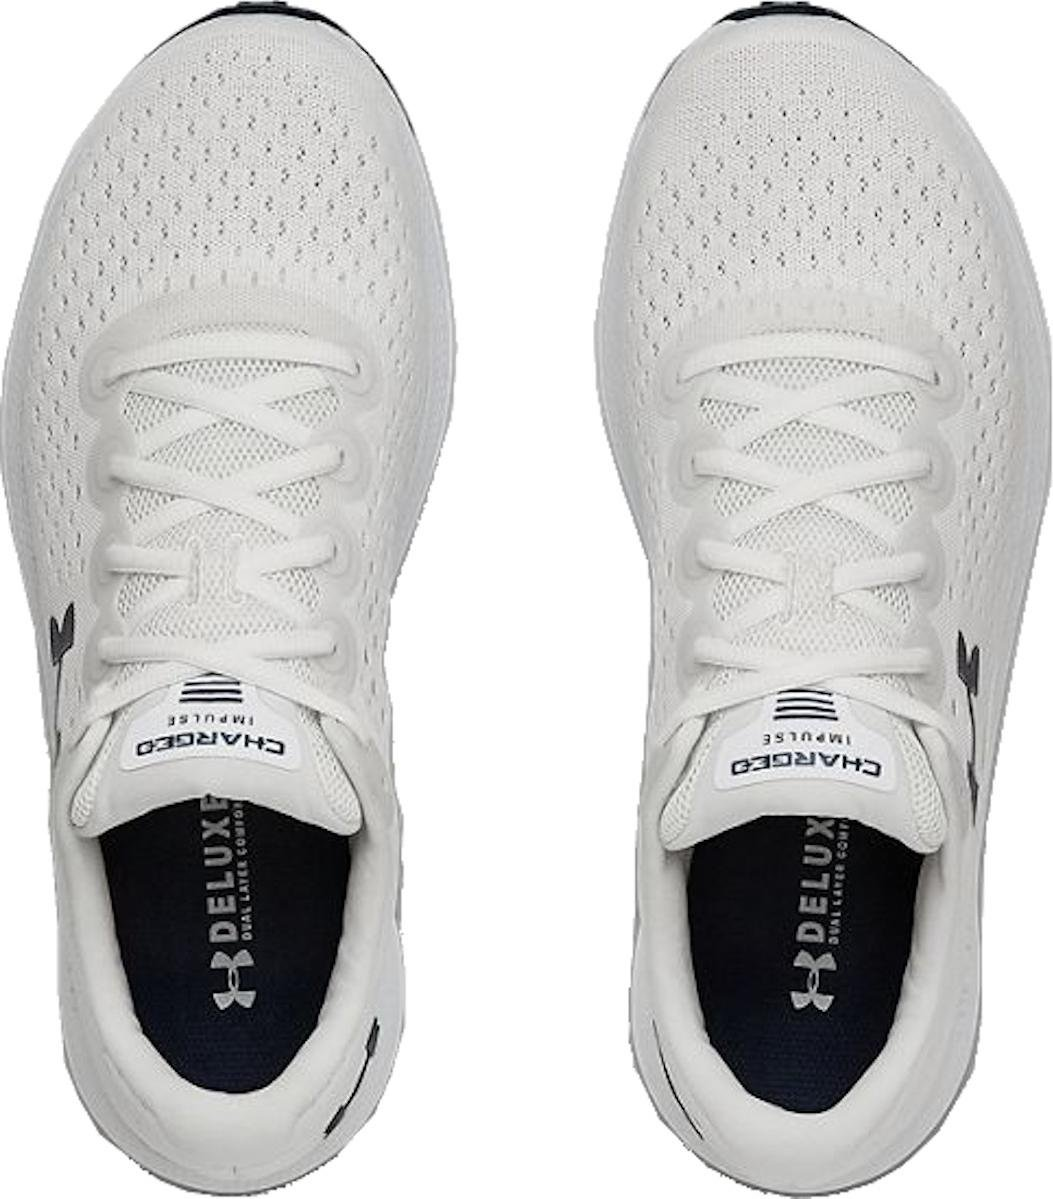 3021950 Under Armour UA Men/'s Charged Impulse Running Training Shoes FREE SHIP